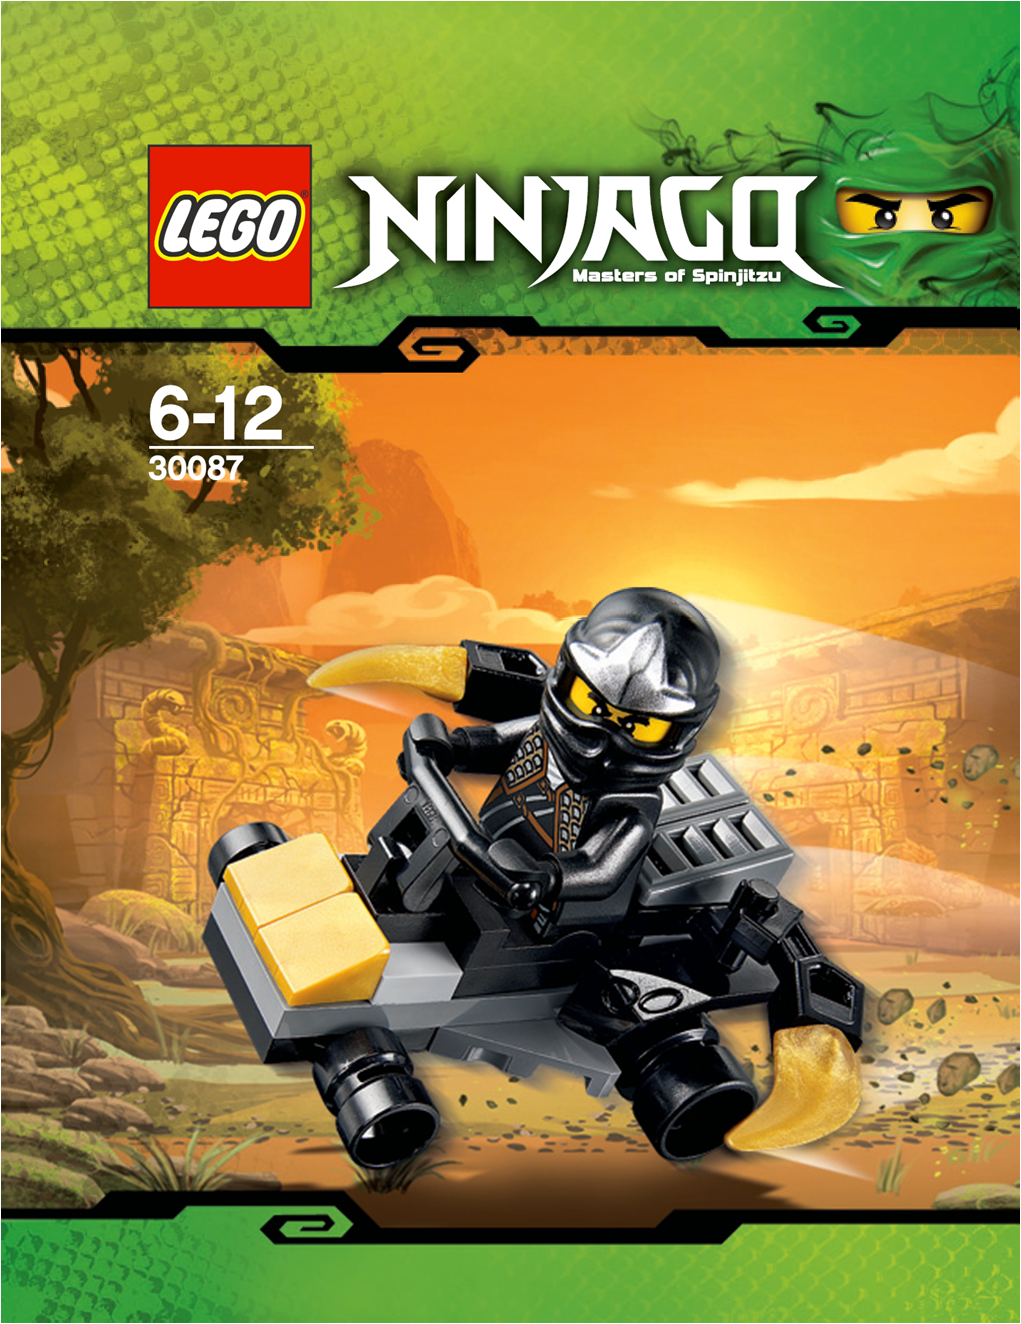 30087 cole 39 s mini car brickipedia fandom powered by wikia - Voiture ninjago ...